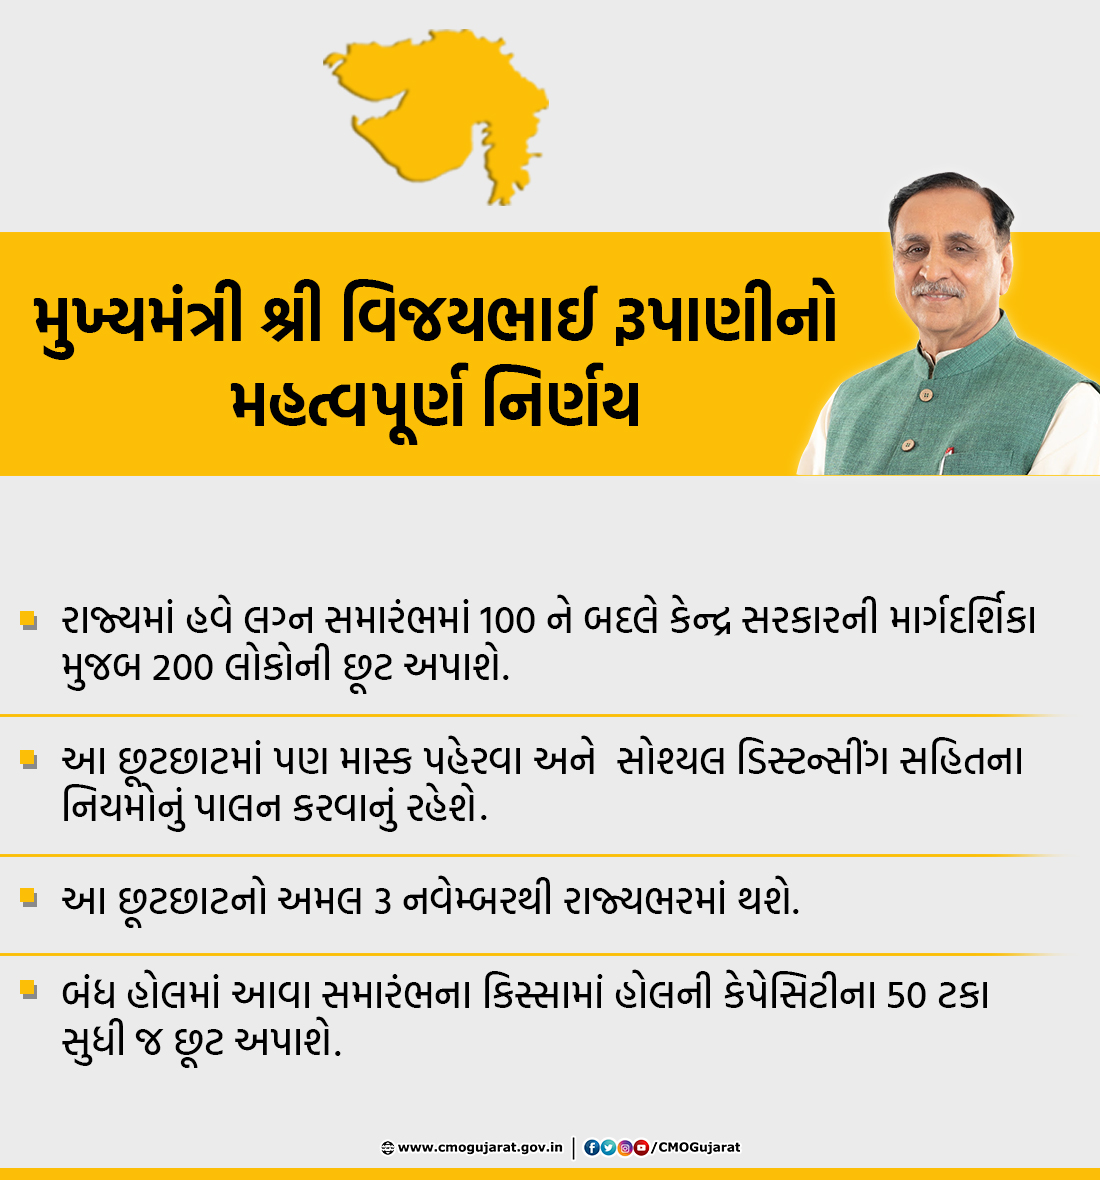 Gujarat CM Vijay Rupani Has Taken An Important Decision To Allow 200 Persons In Wedding